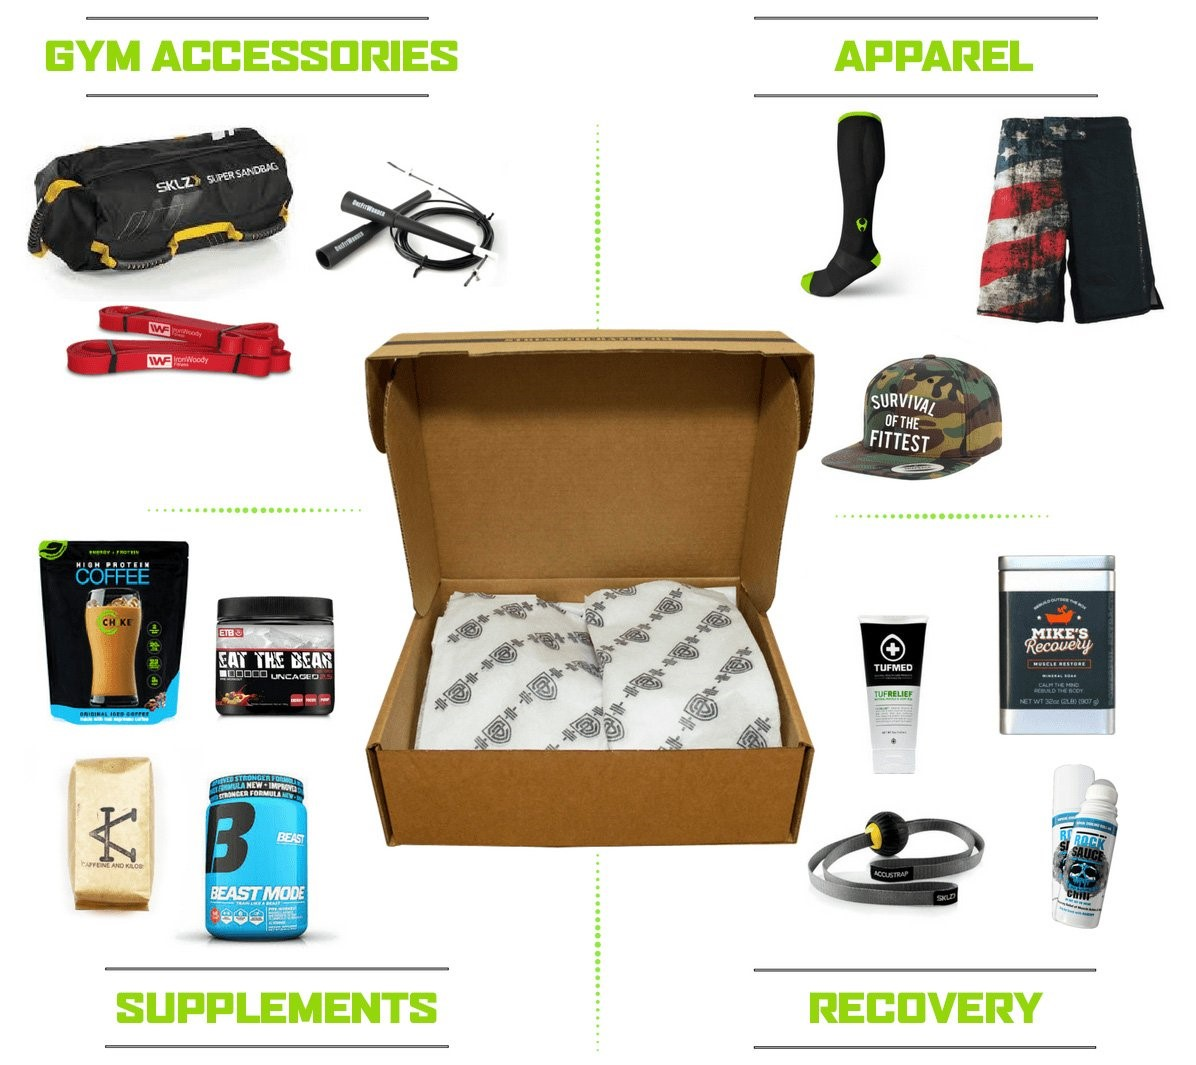 StrengthCrate Subscription Box   They curate a premium  monthly fitness subscription box  that sends you functional fitness equipment, supplements, apparel, and training aids. A subscription box is the gift that keeps on giving all year long.